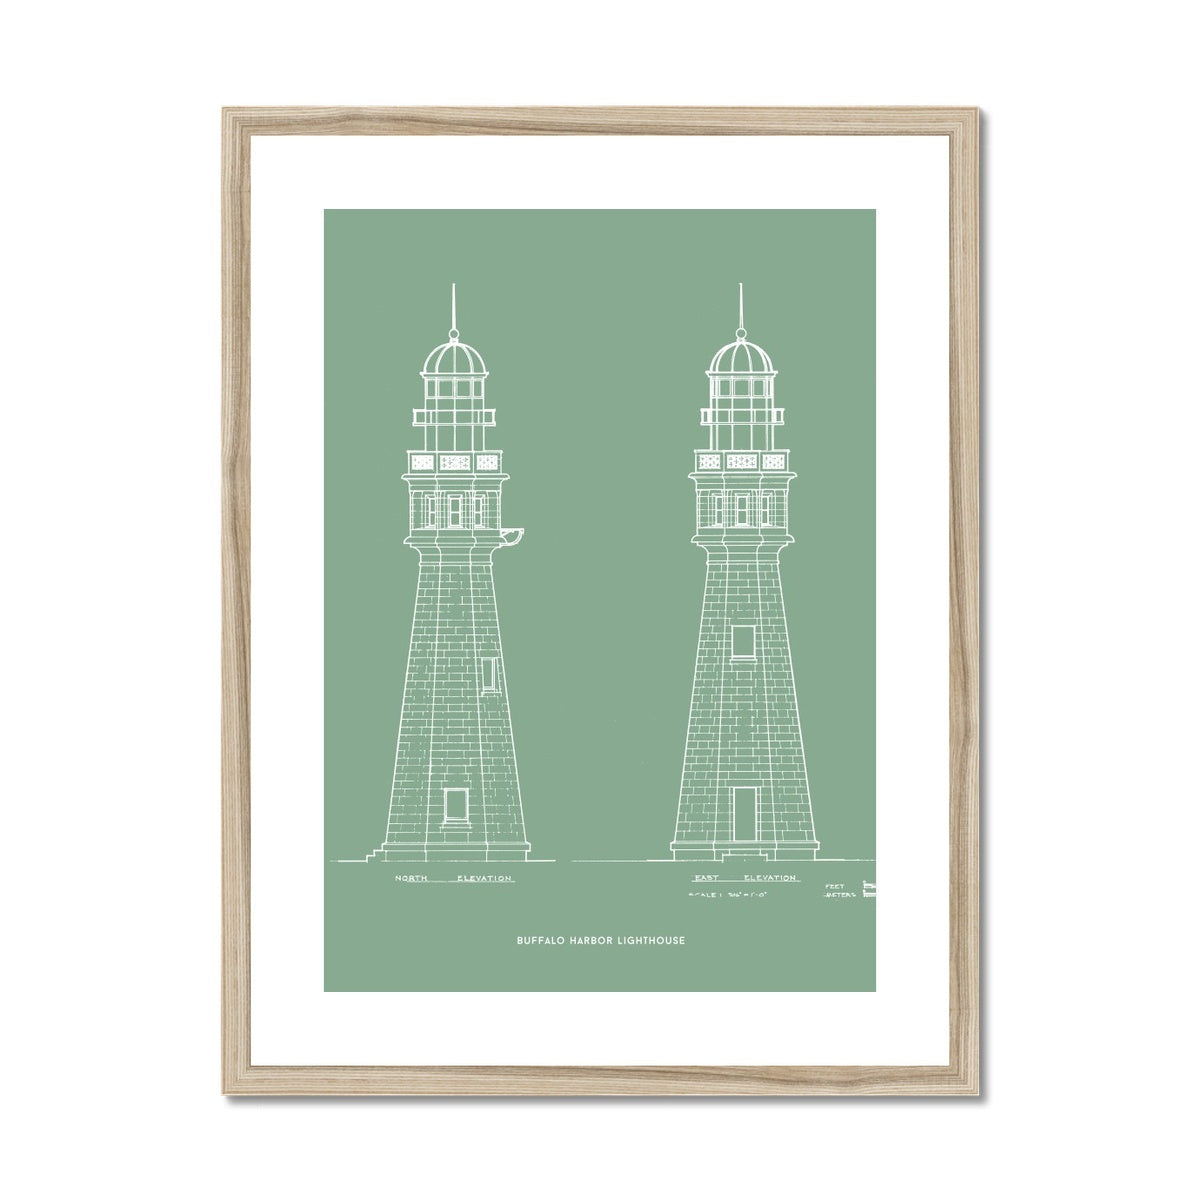 Buffalo Harbor Lighthouse - North and East Elevations - Green -  Framed & Mounted Print